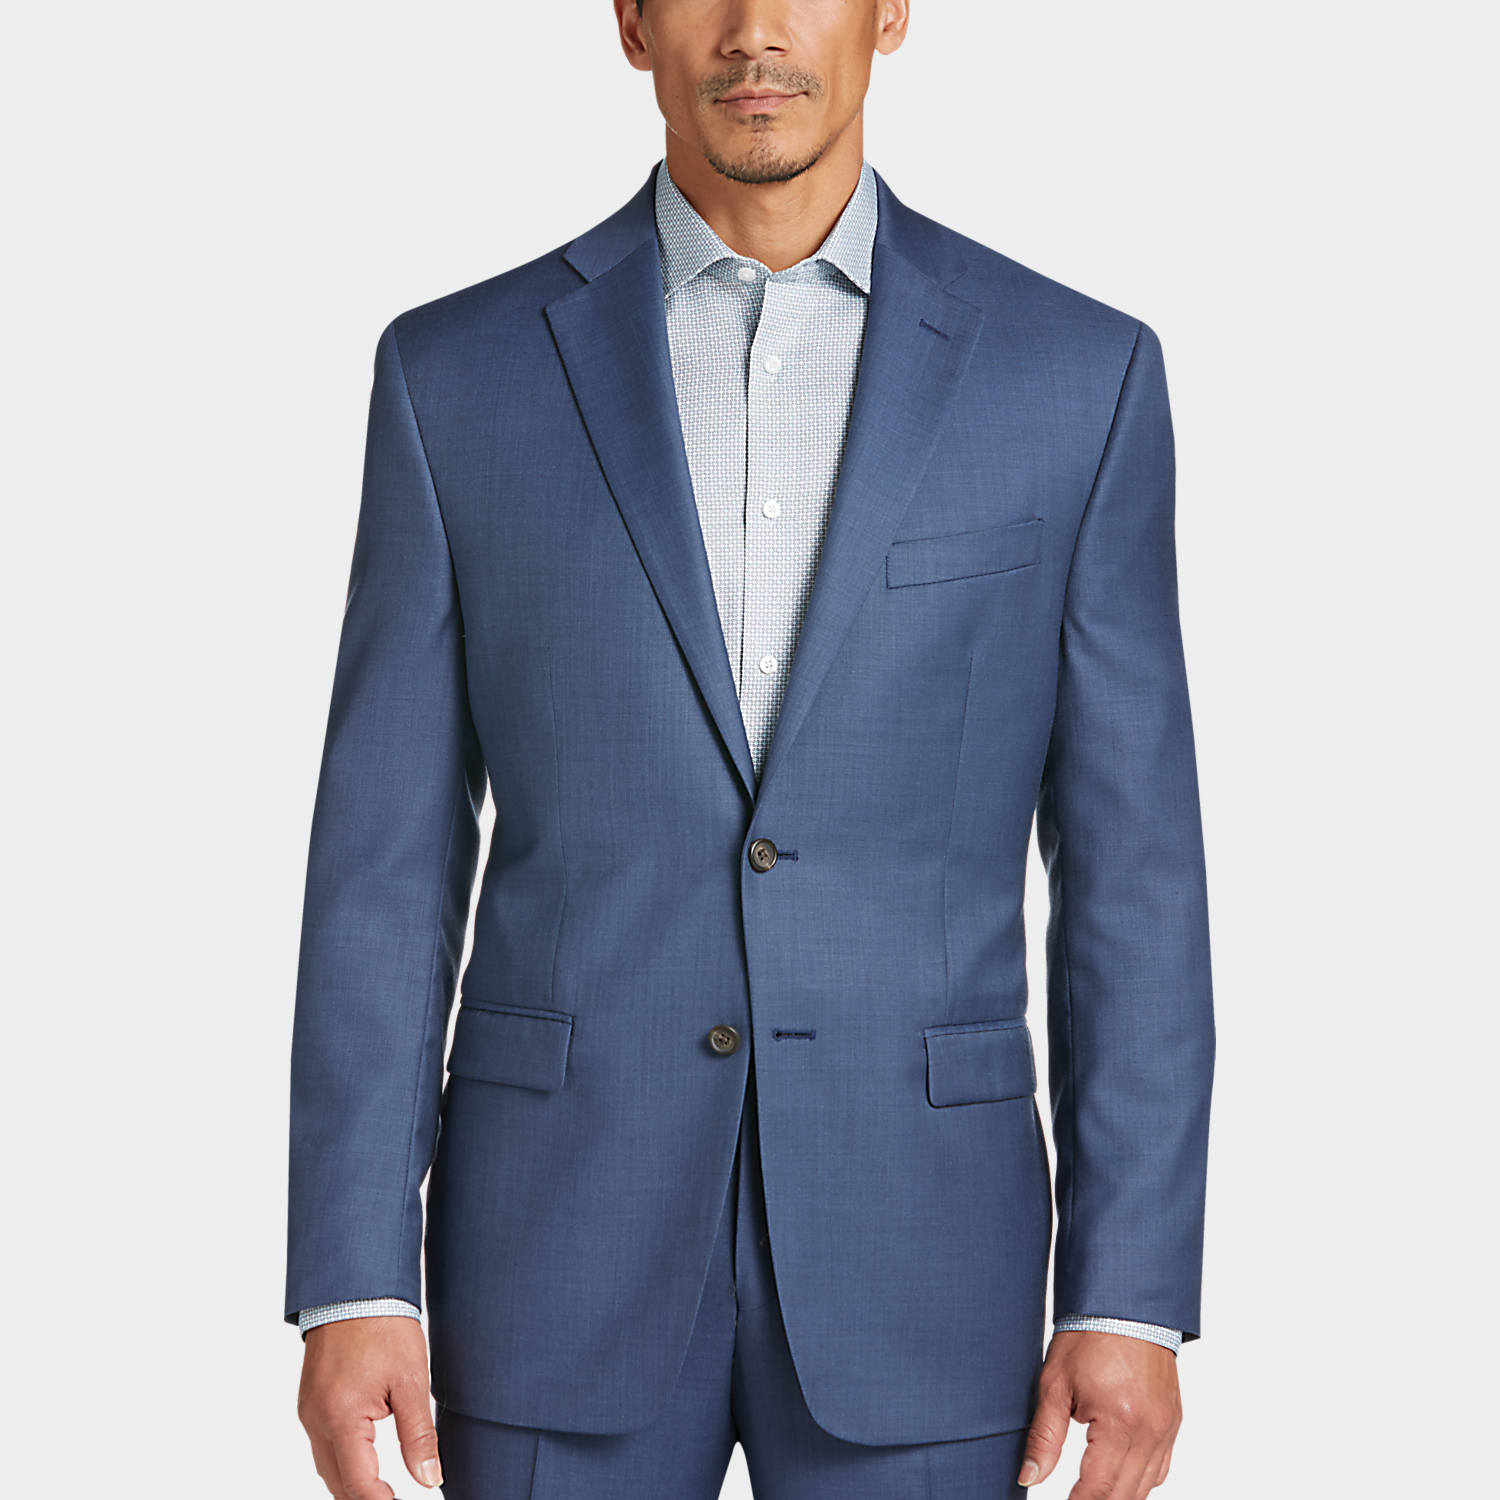 mens suits menu0027s suits - top suit shop online | menu0027s wearhouse VSNJVJZ